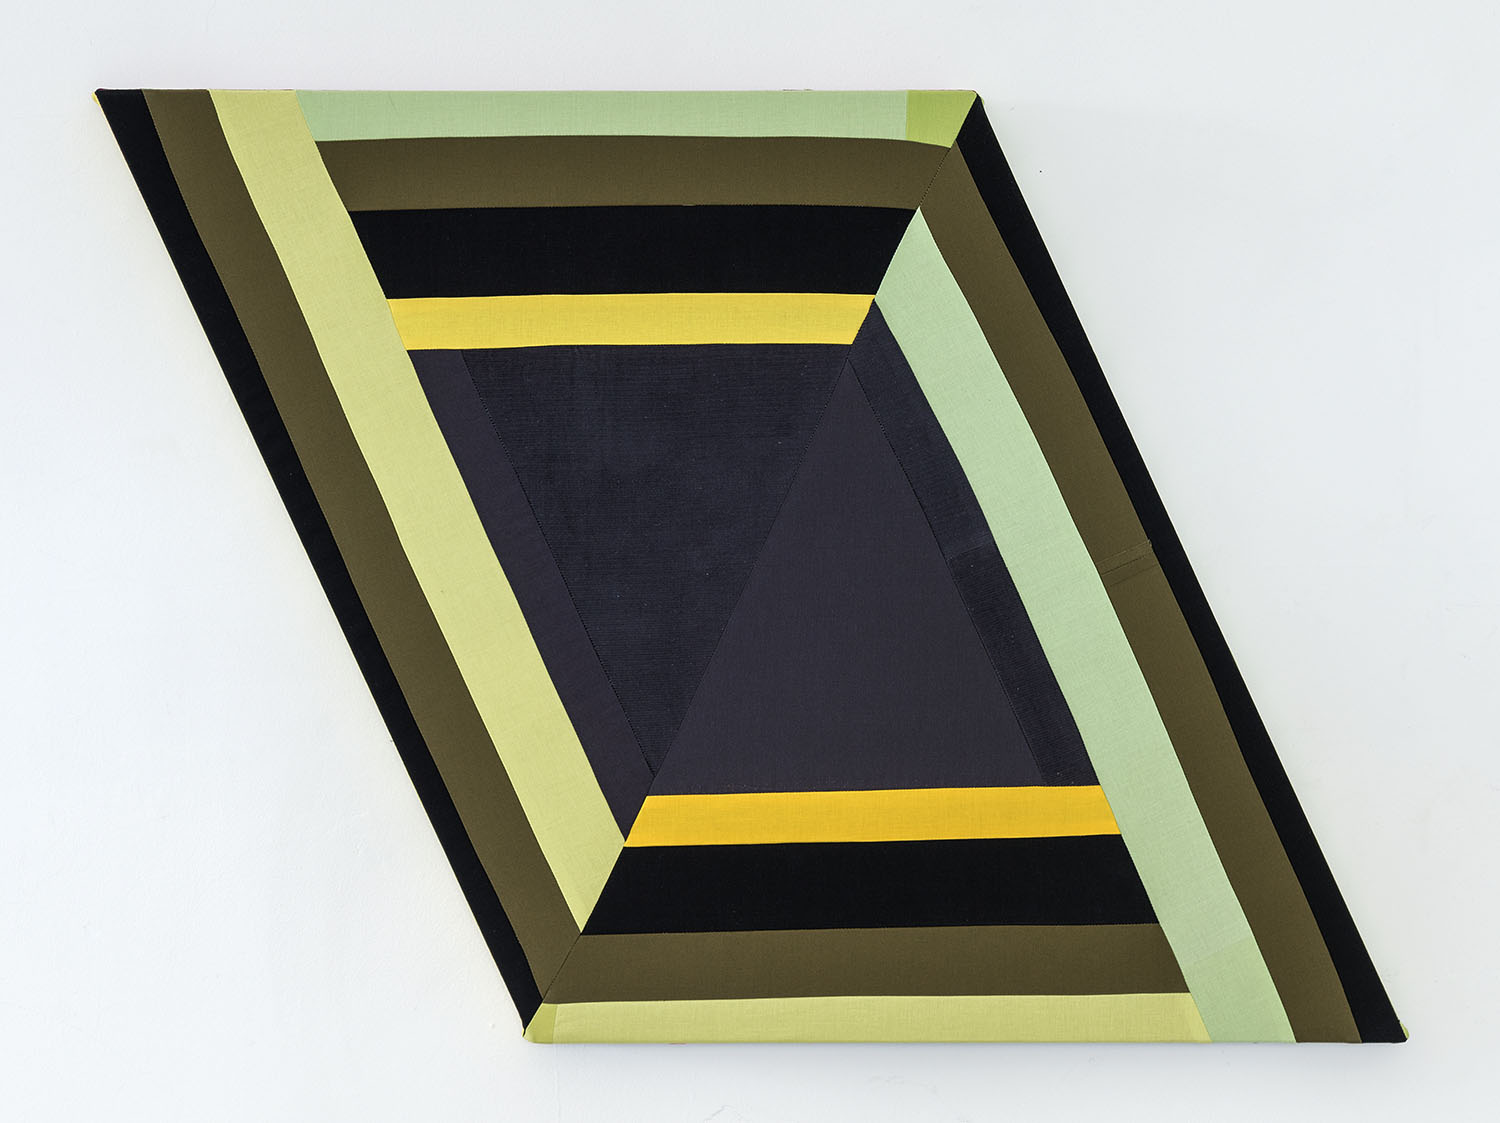 Know Wrong Angles   ,  2019 Sewn cotton, corduroy and canvas on shaped support 25 x 34.5 inches overall (63.5 x 87.6 cm overall)